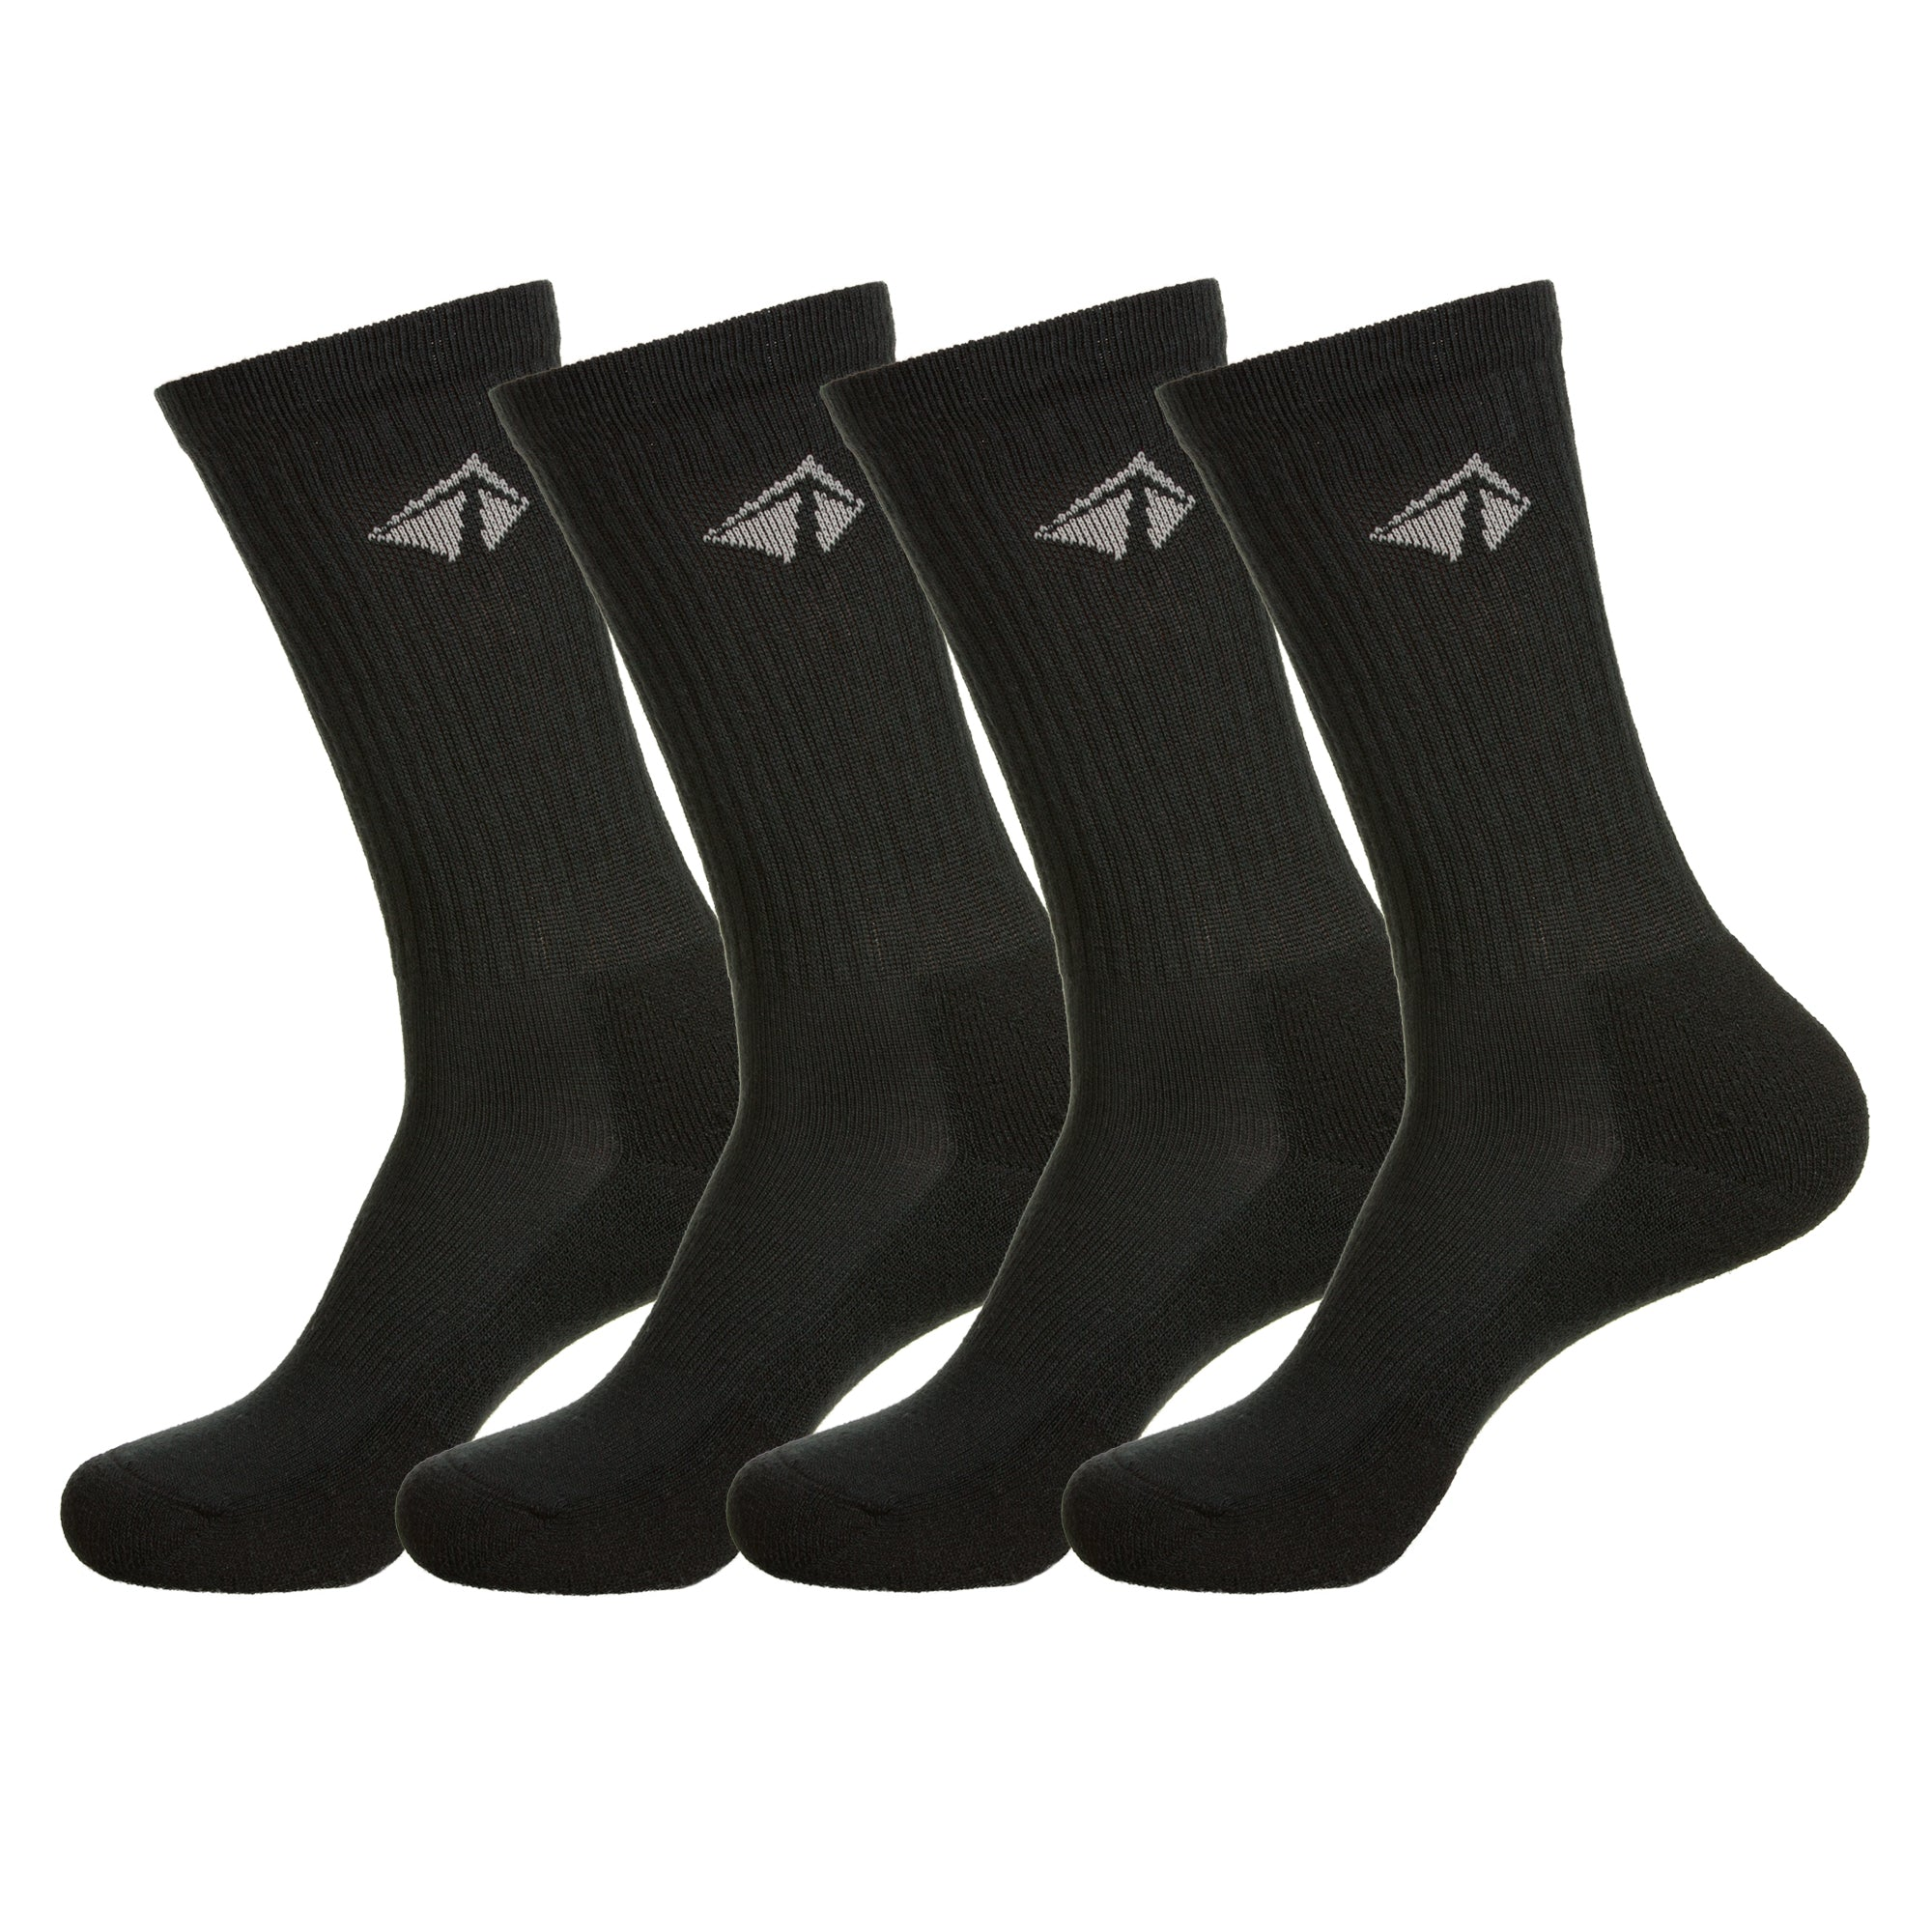 Atacama Performance Crew Sock - The All Blacks Set (4/pk)